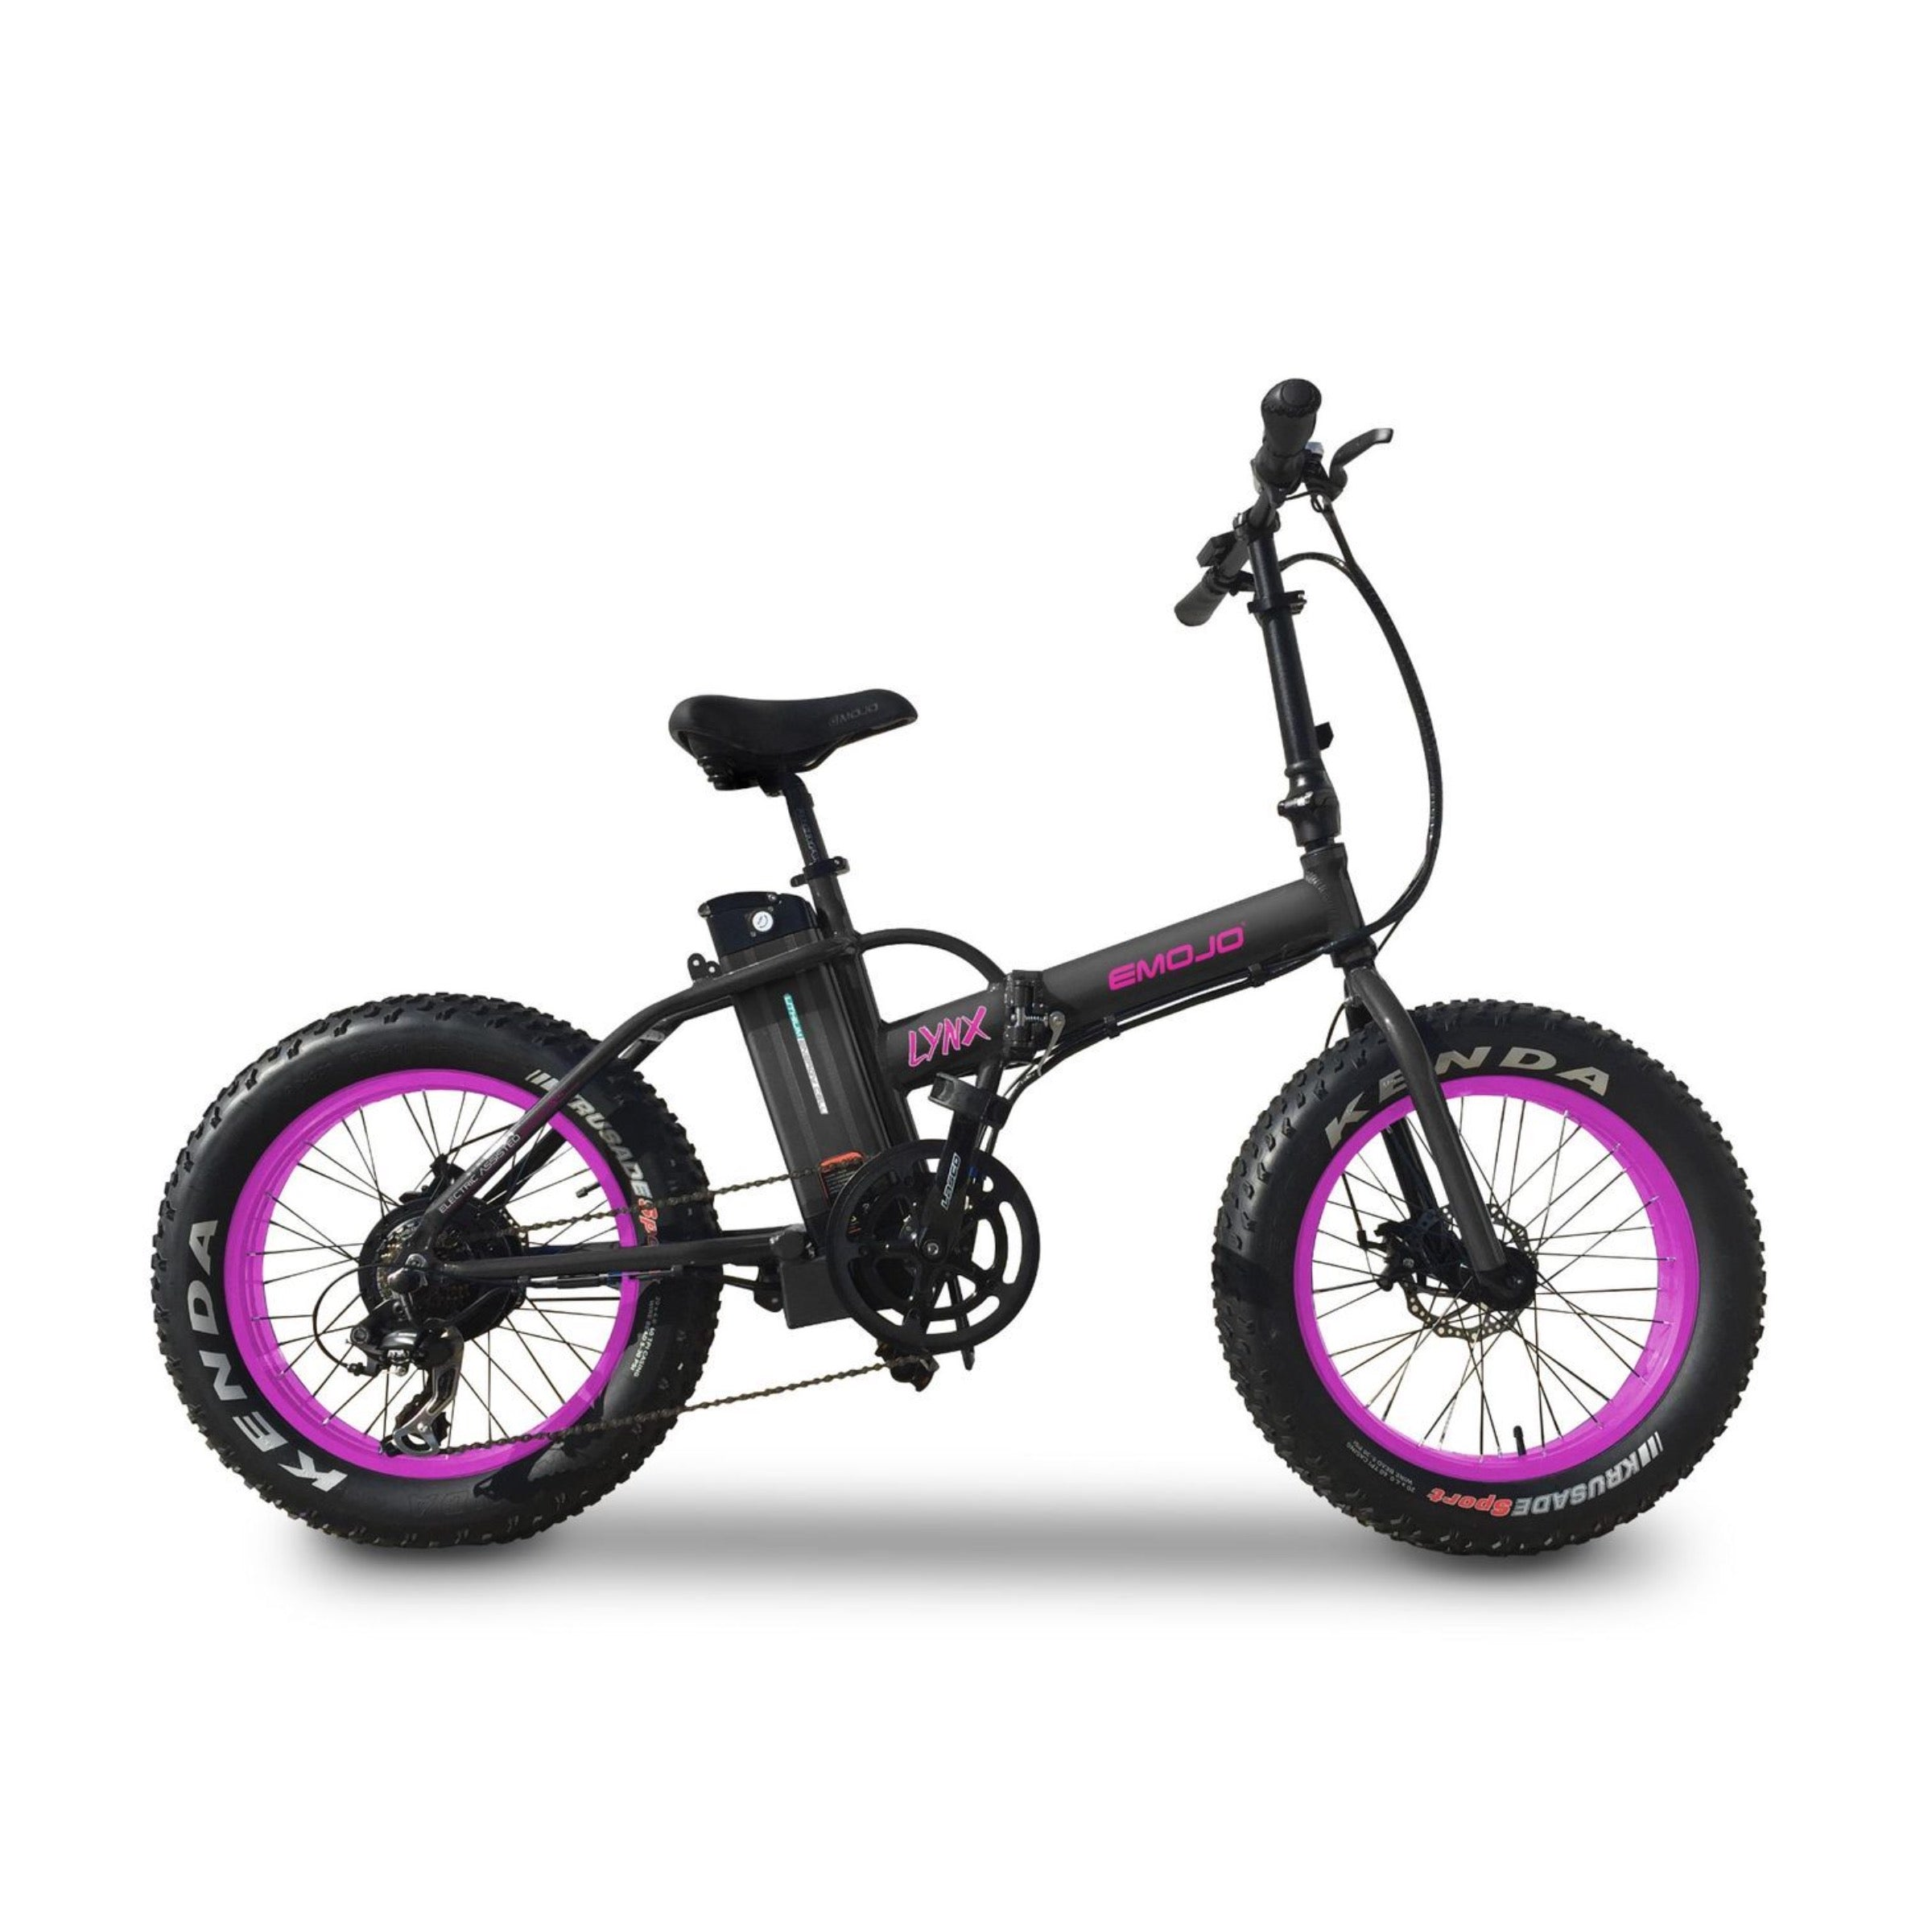 Emojo - LYNX 500w 36v Folding Fat Tire